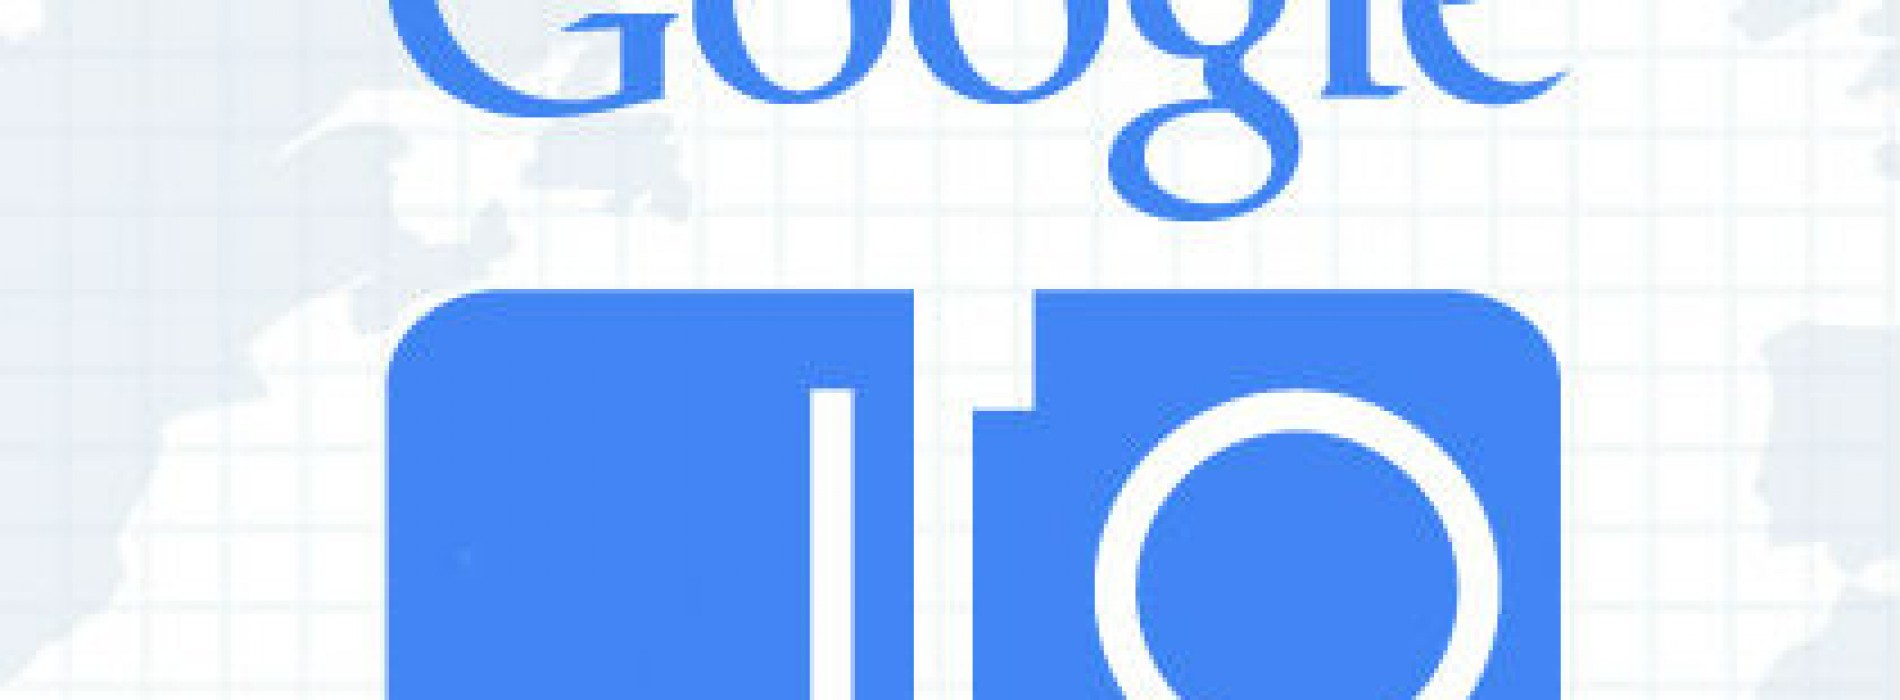 Google I/O being held June 25 to 26, new registration system coming